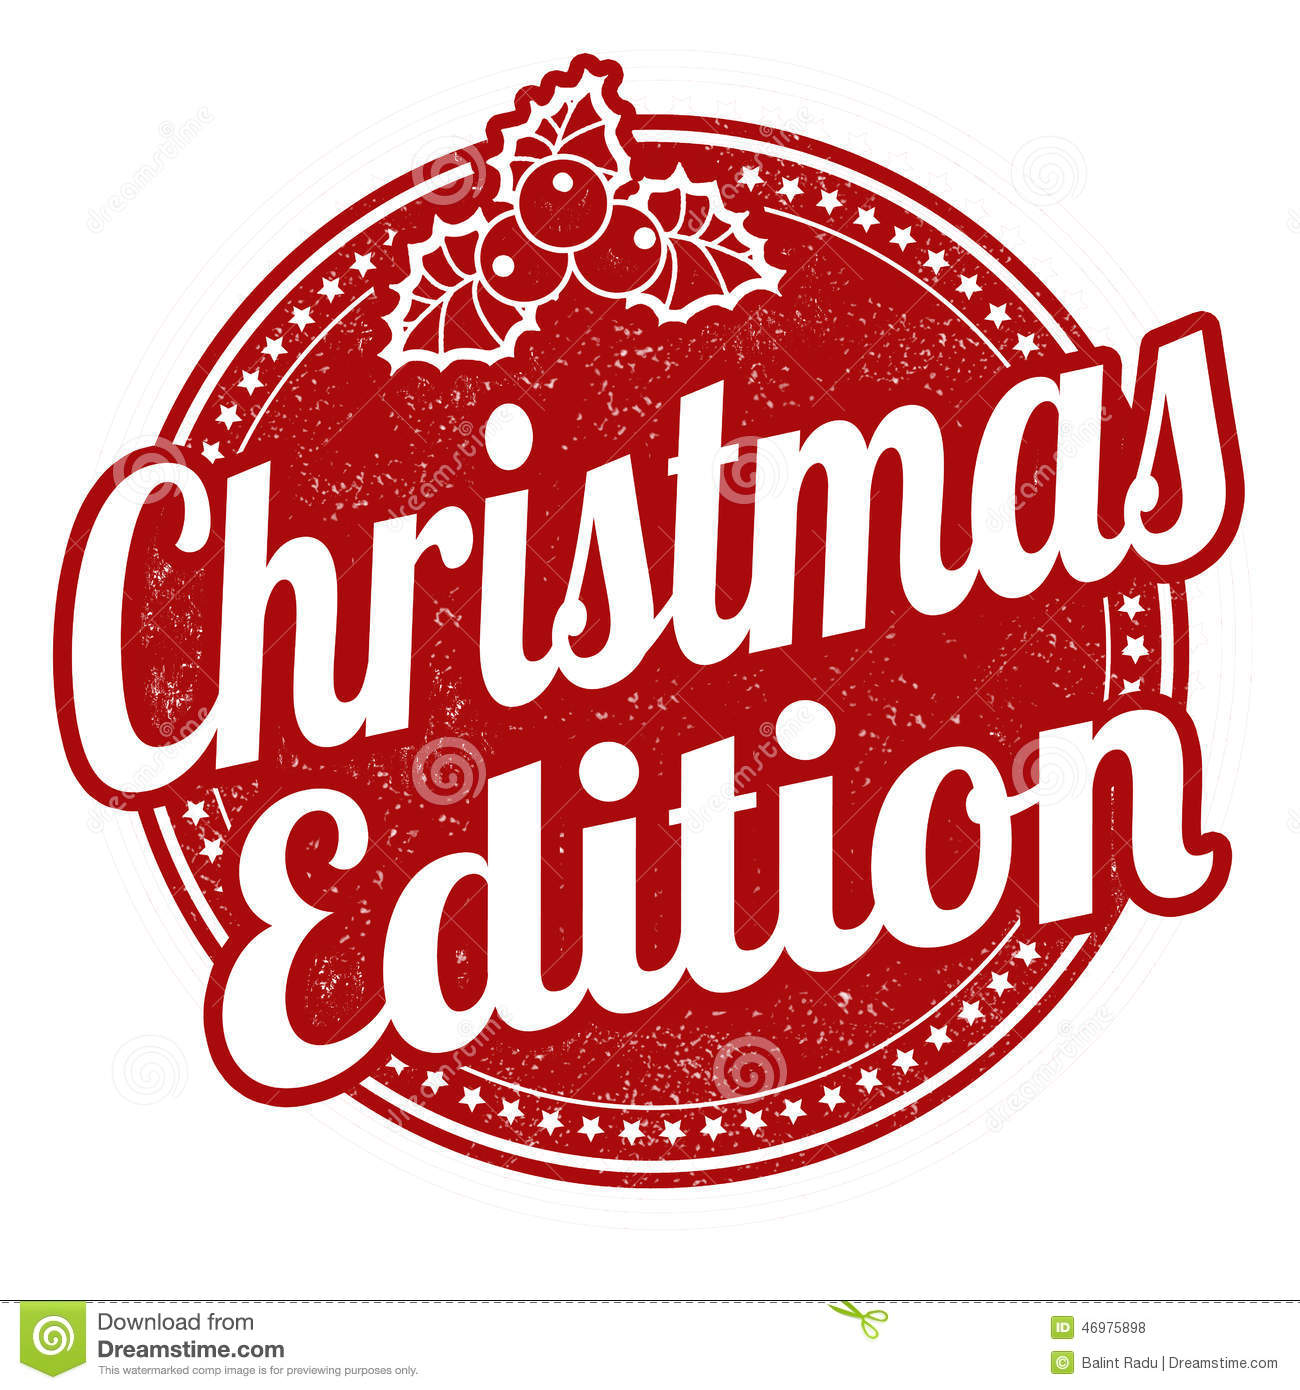 Exceptional Royalty Free Vintage Christmas Images #2: Christmas-edition-stamp-grunge-rubber-white-background-vector-illustration-46975898.jpg